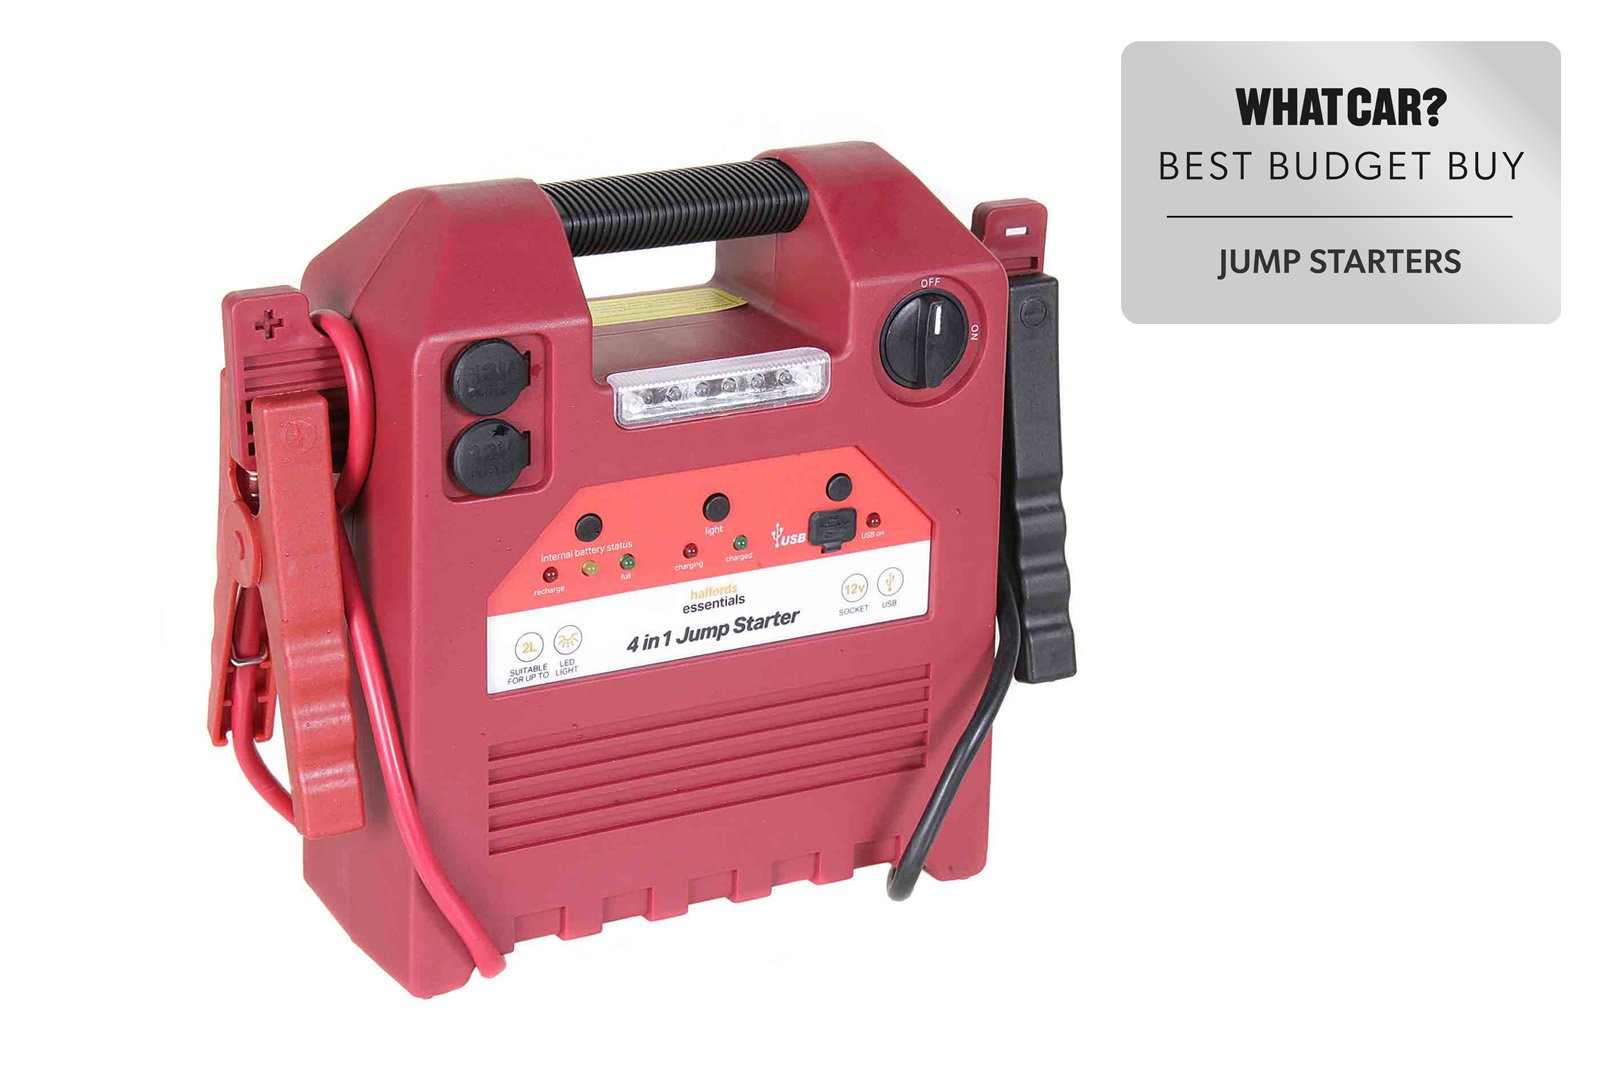 Jump Starters - 2021 Best Budget Buy